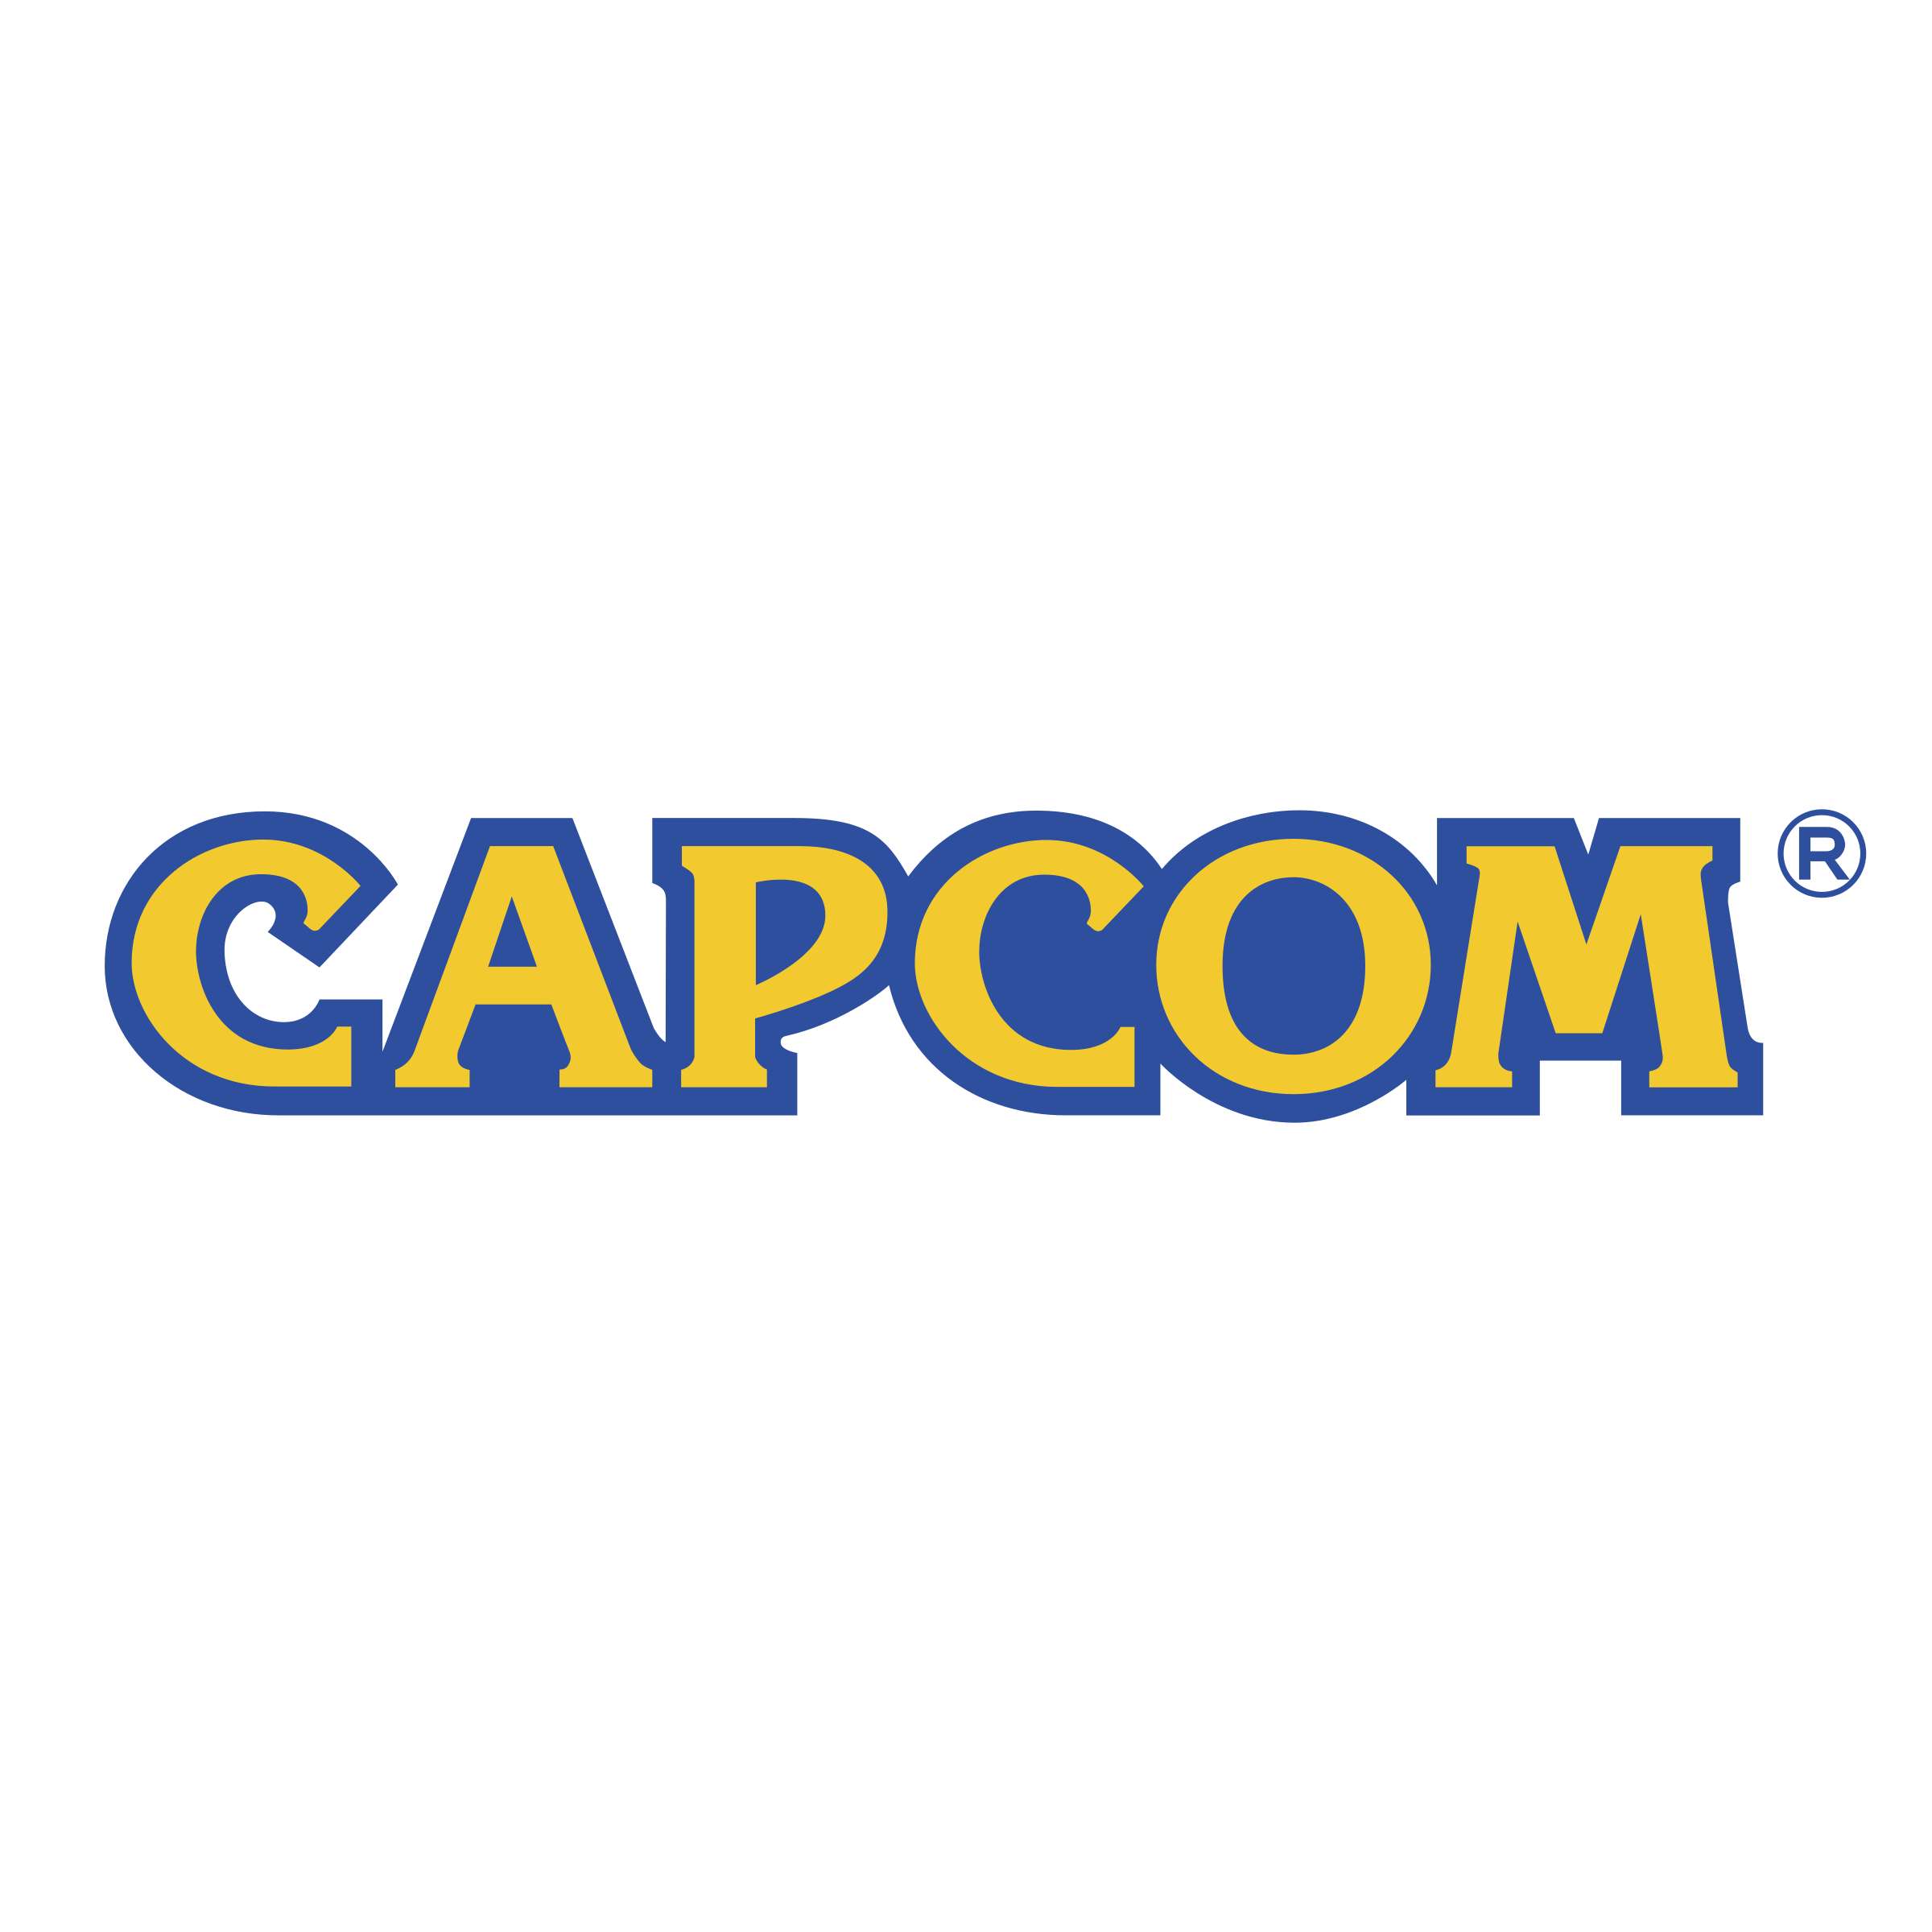 capcom-logo-png-transparent.png